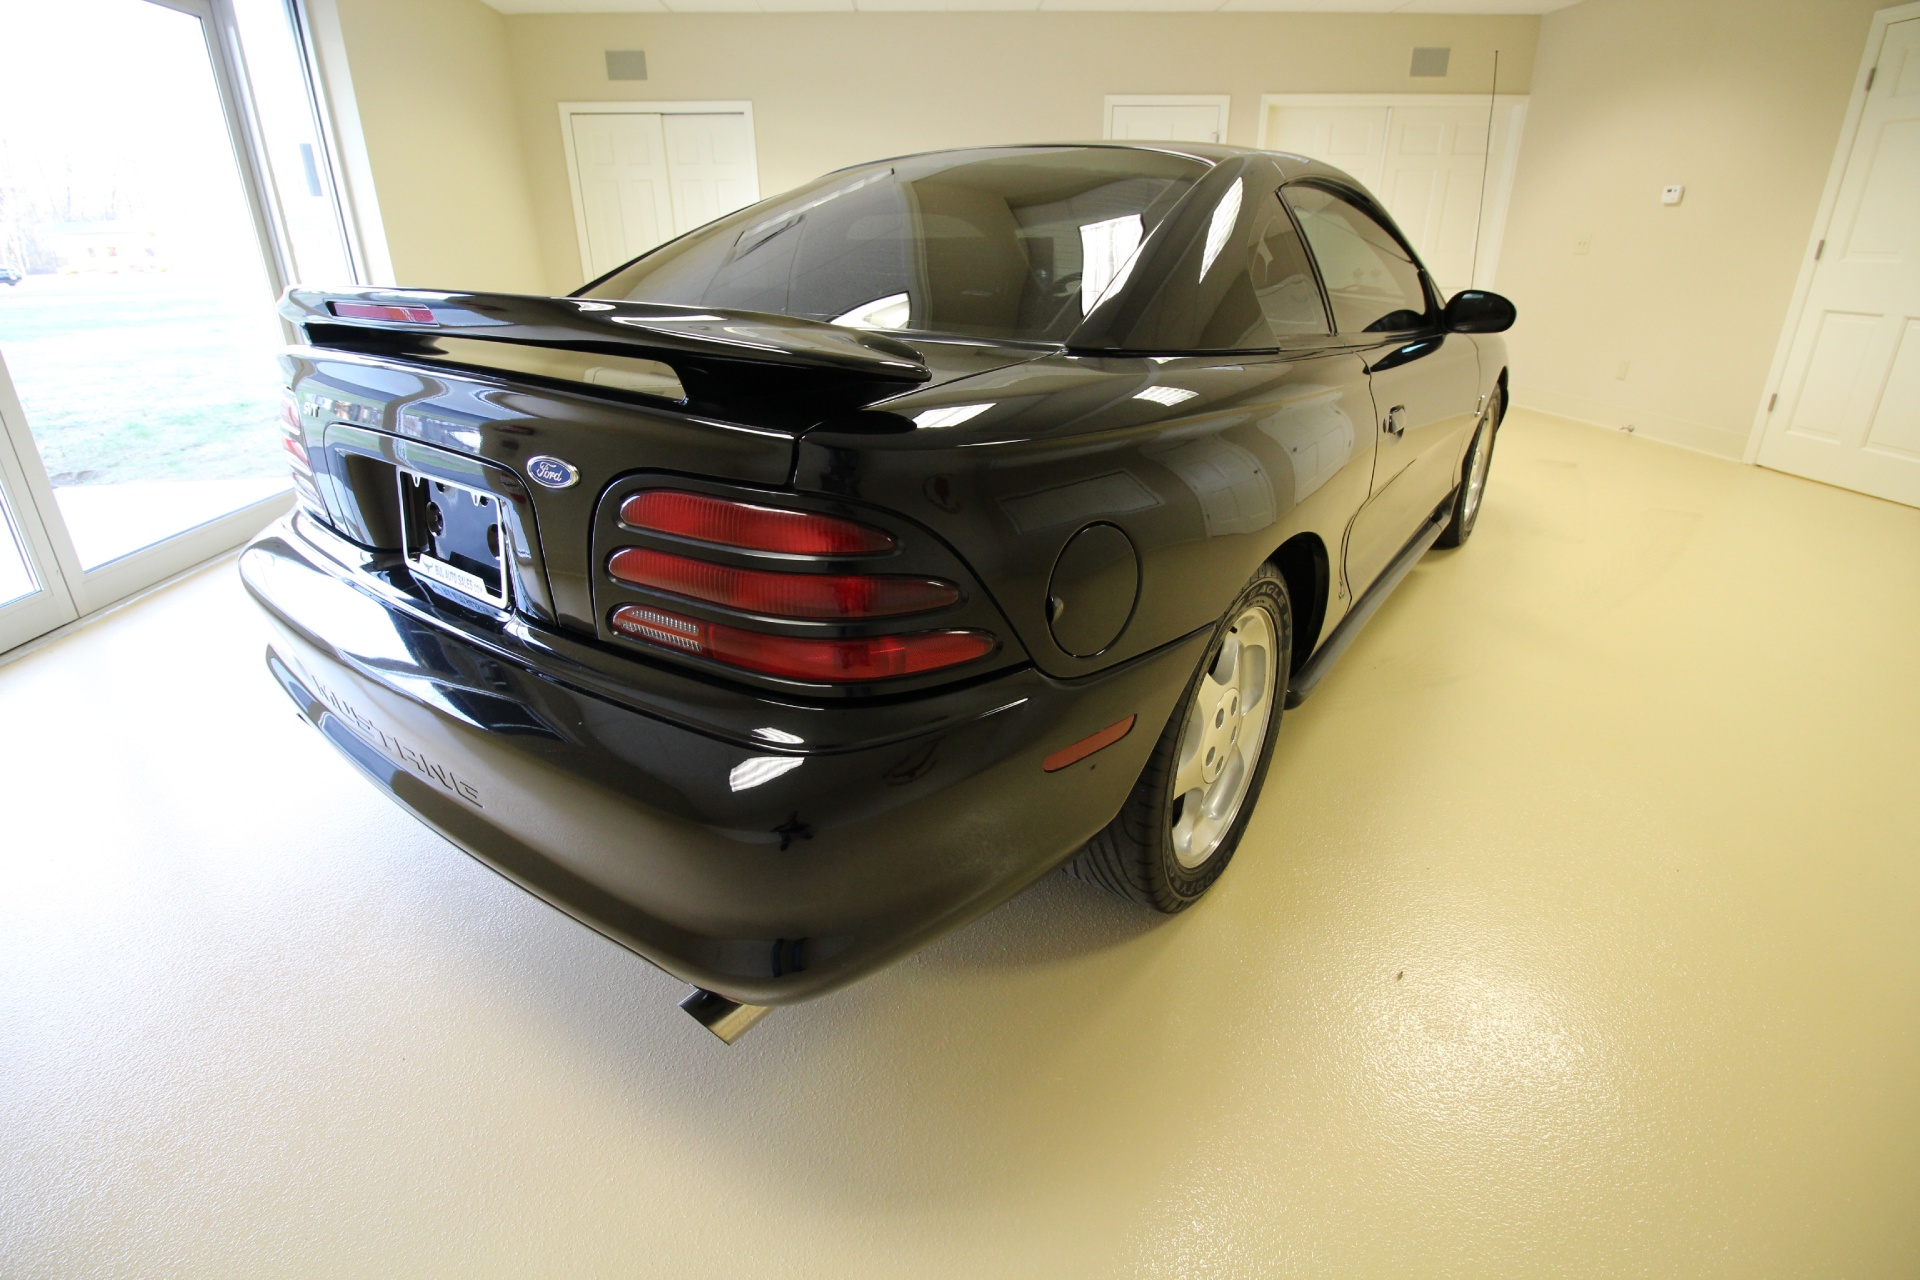 Used 1995 Ford Mustang SVT Cobra 5.0 V8 COBRA,NOVI2000 BLOWER,TUNED AND DYNO SHEETS | Albany, NY